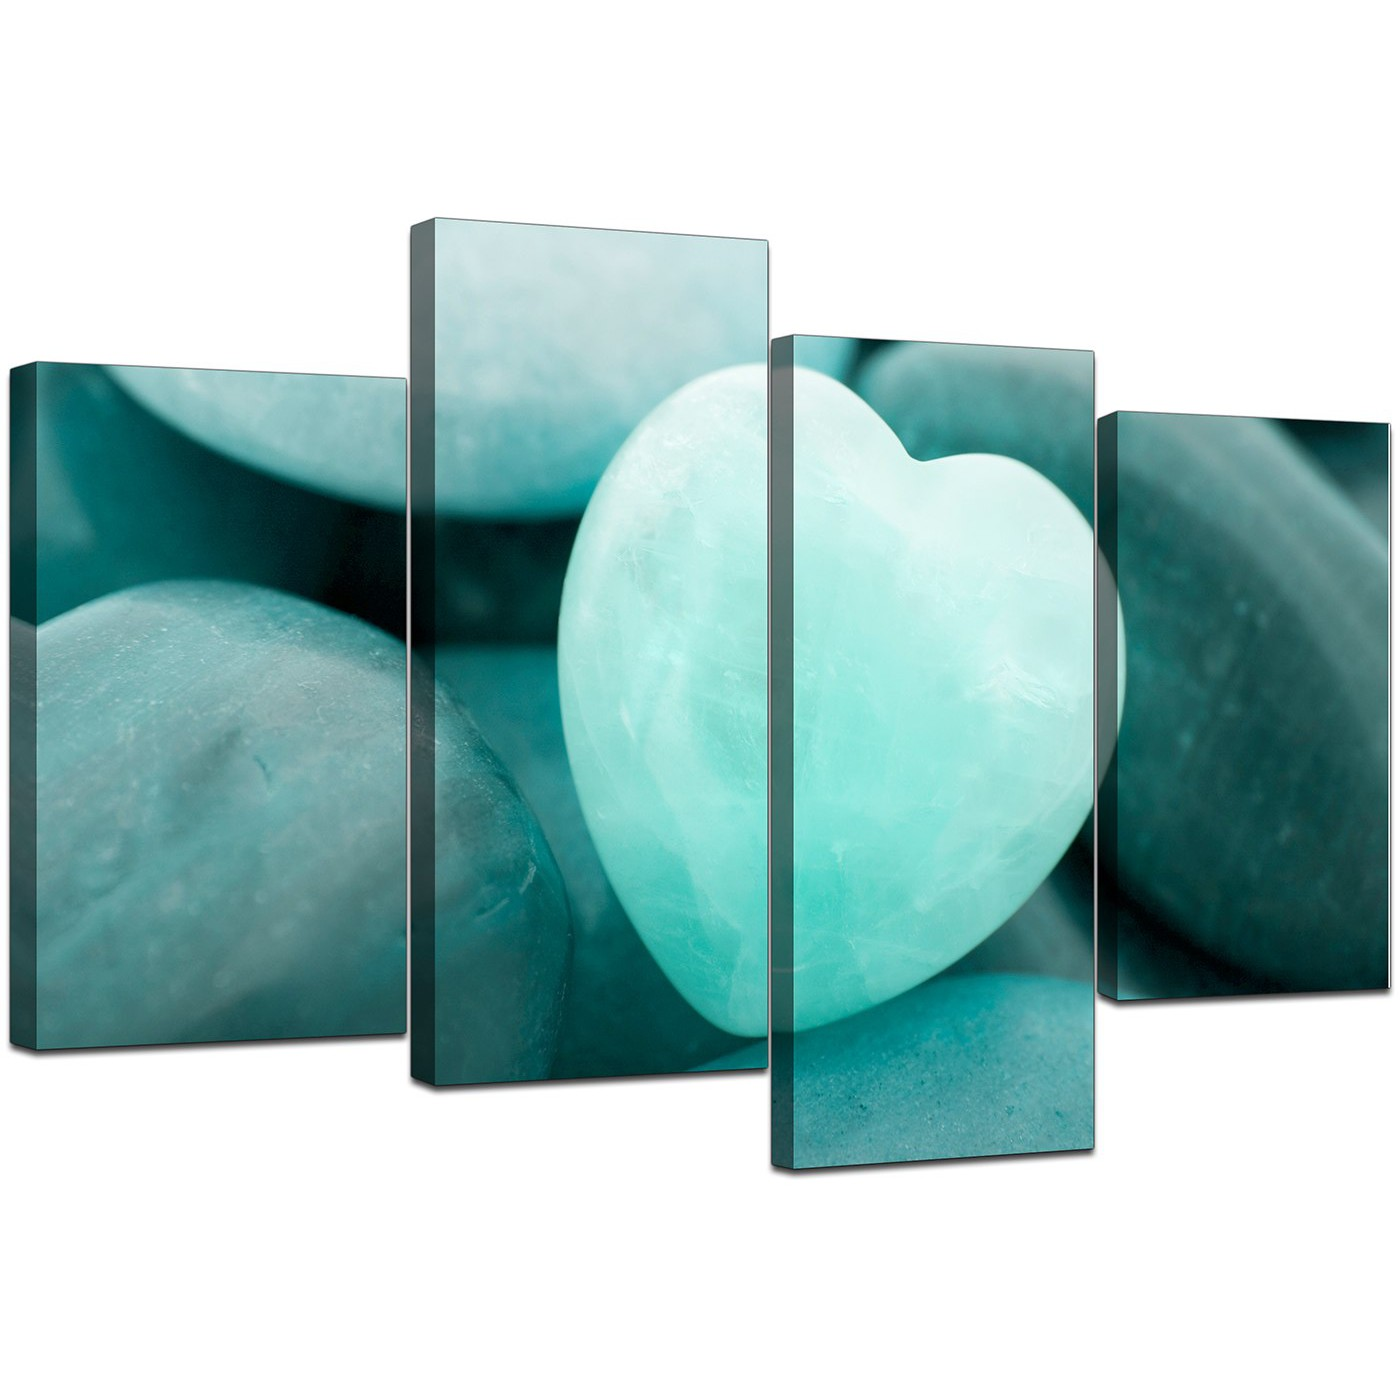 Awesome Display Gallery Item 5; Four Panel Set Of Living Room Teal Canvas Pictures  Display Gallery Item 6